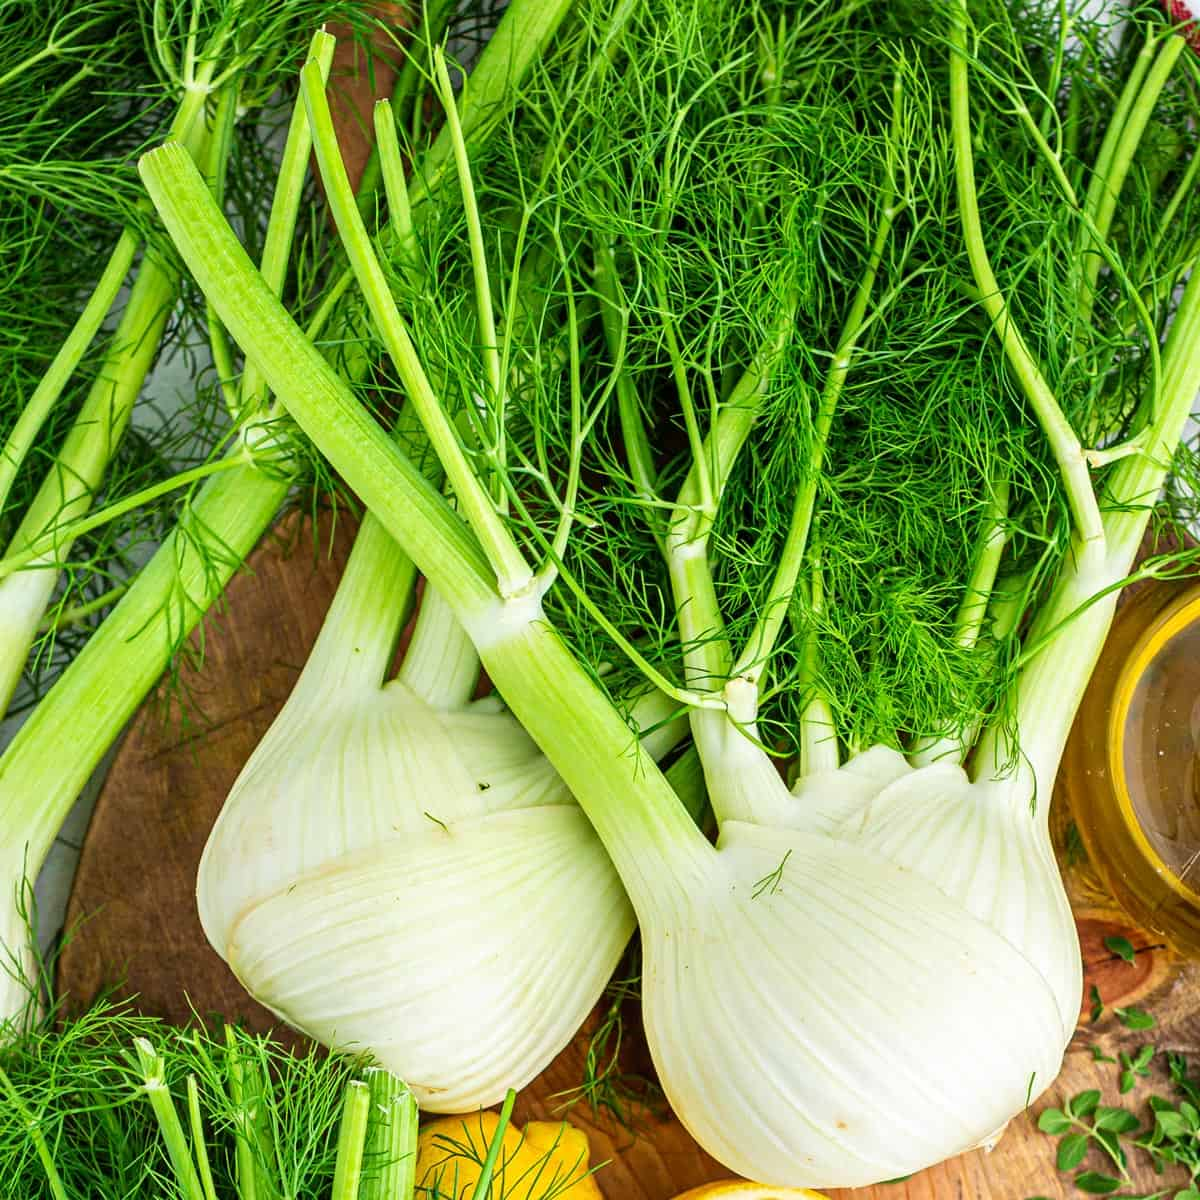 Two bulbs of fresh fennel with their fronds